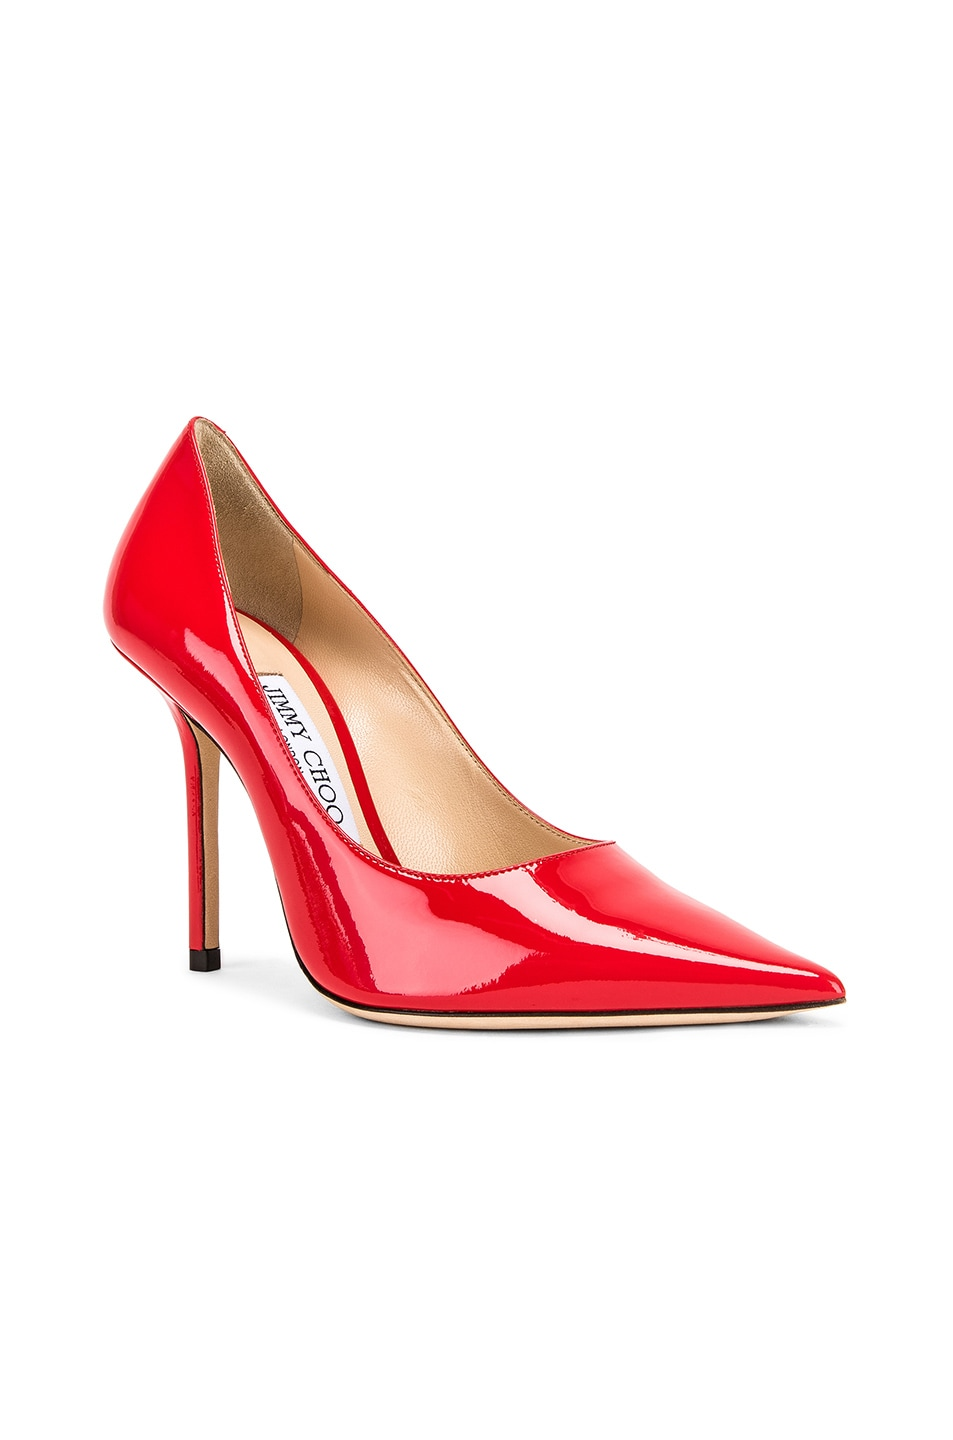 Image 2 of Jimmy Choo Love 100 Patent Leather Heel in Chilli